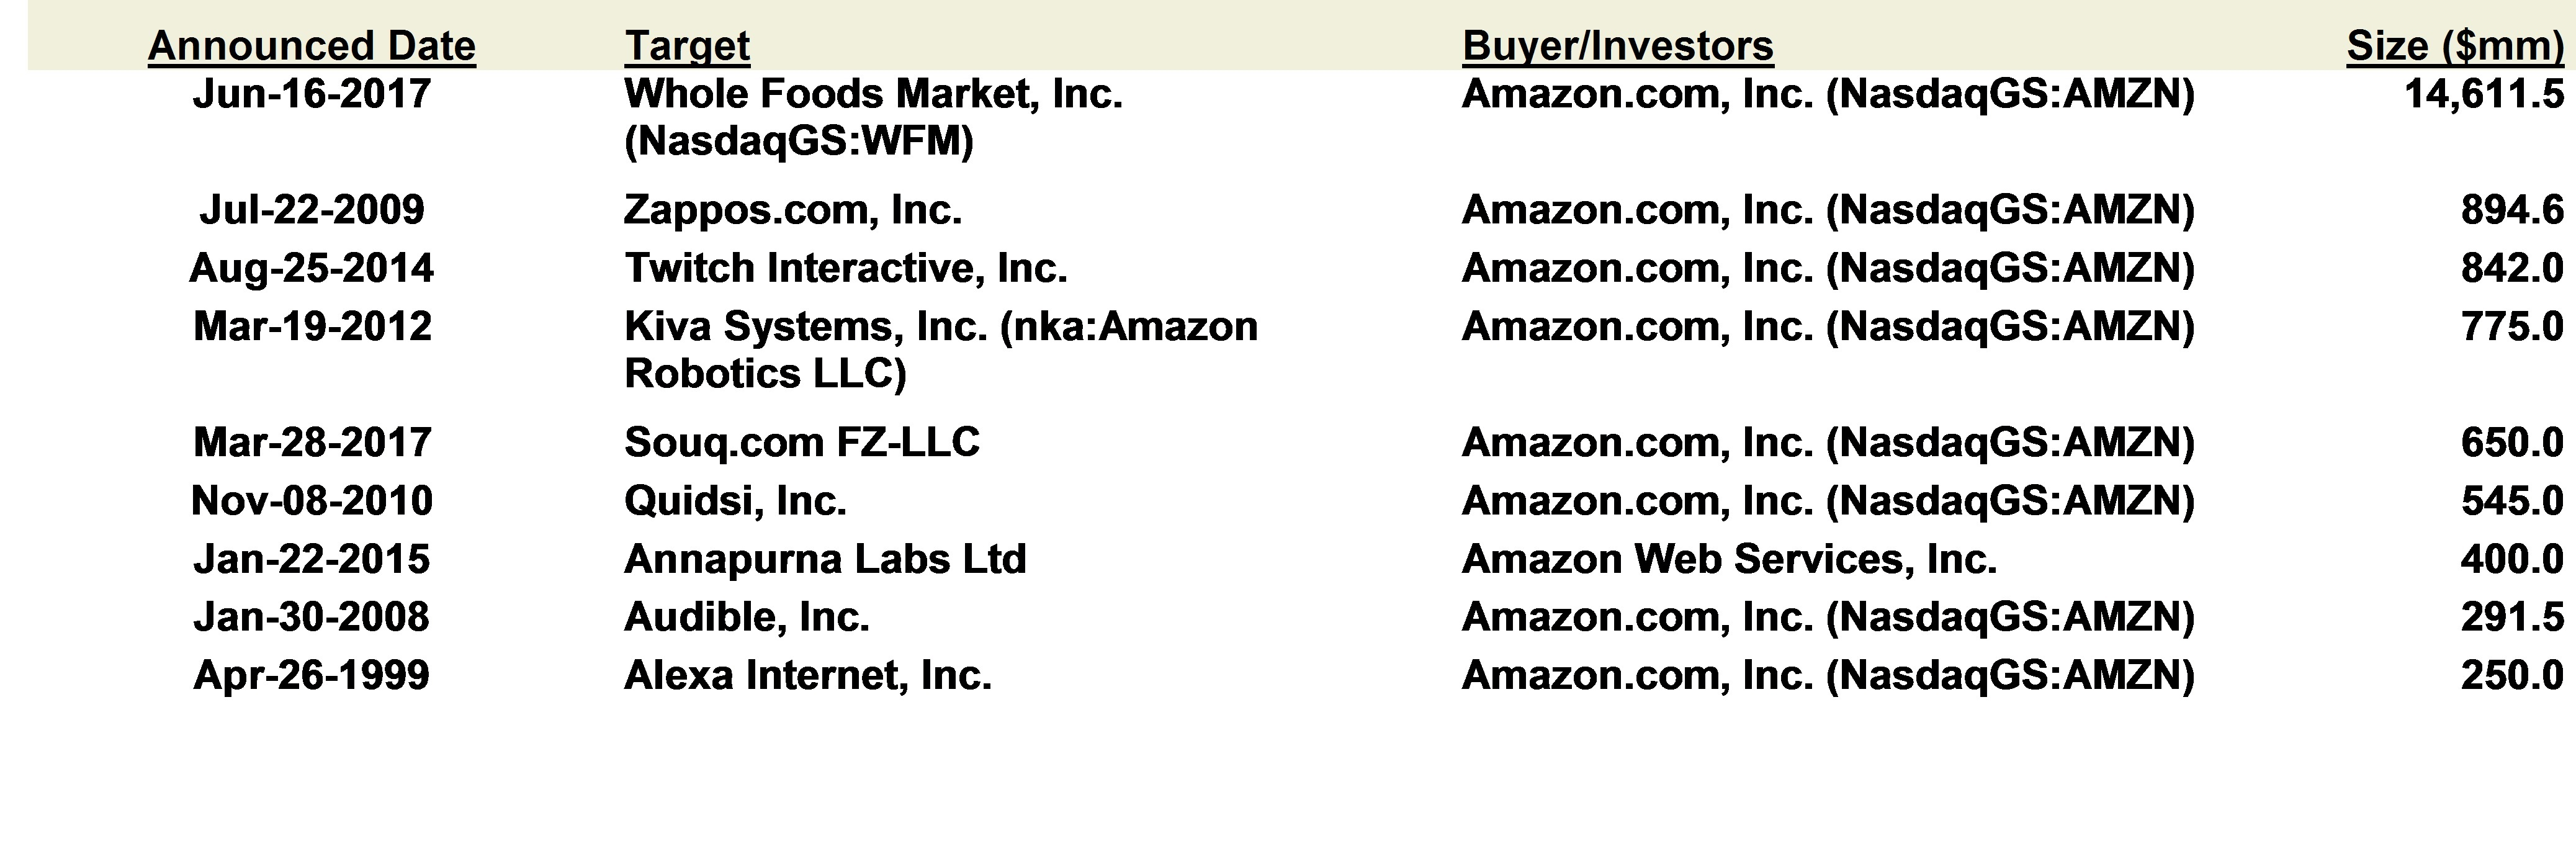 Leading Acquisitions Announced by Amazon.com